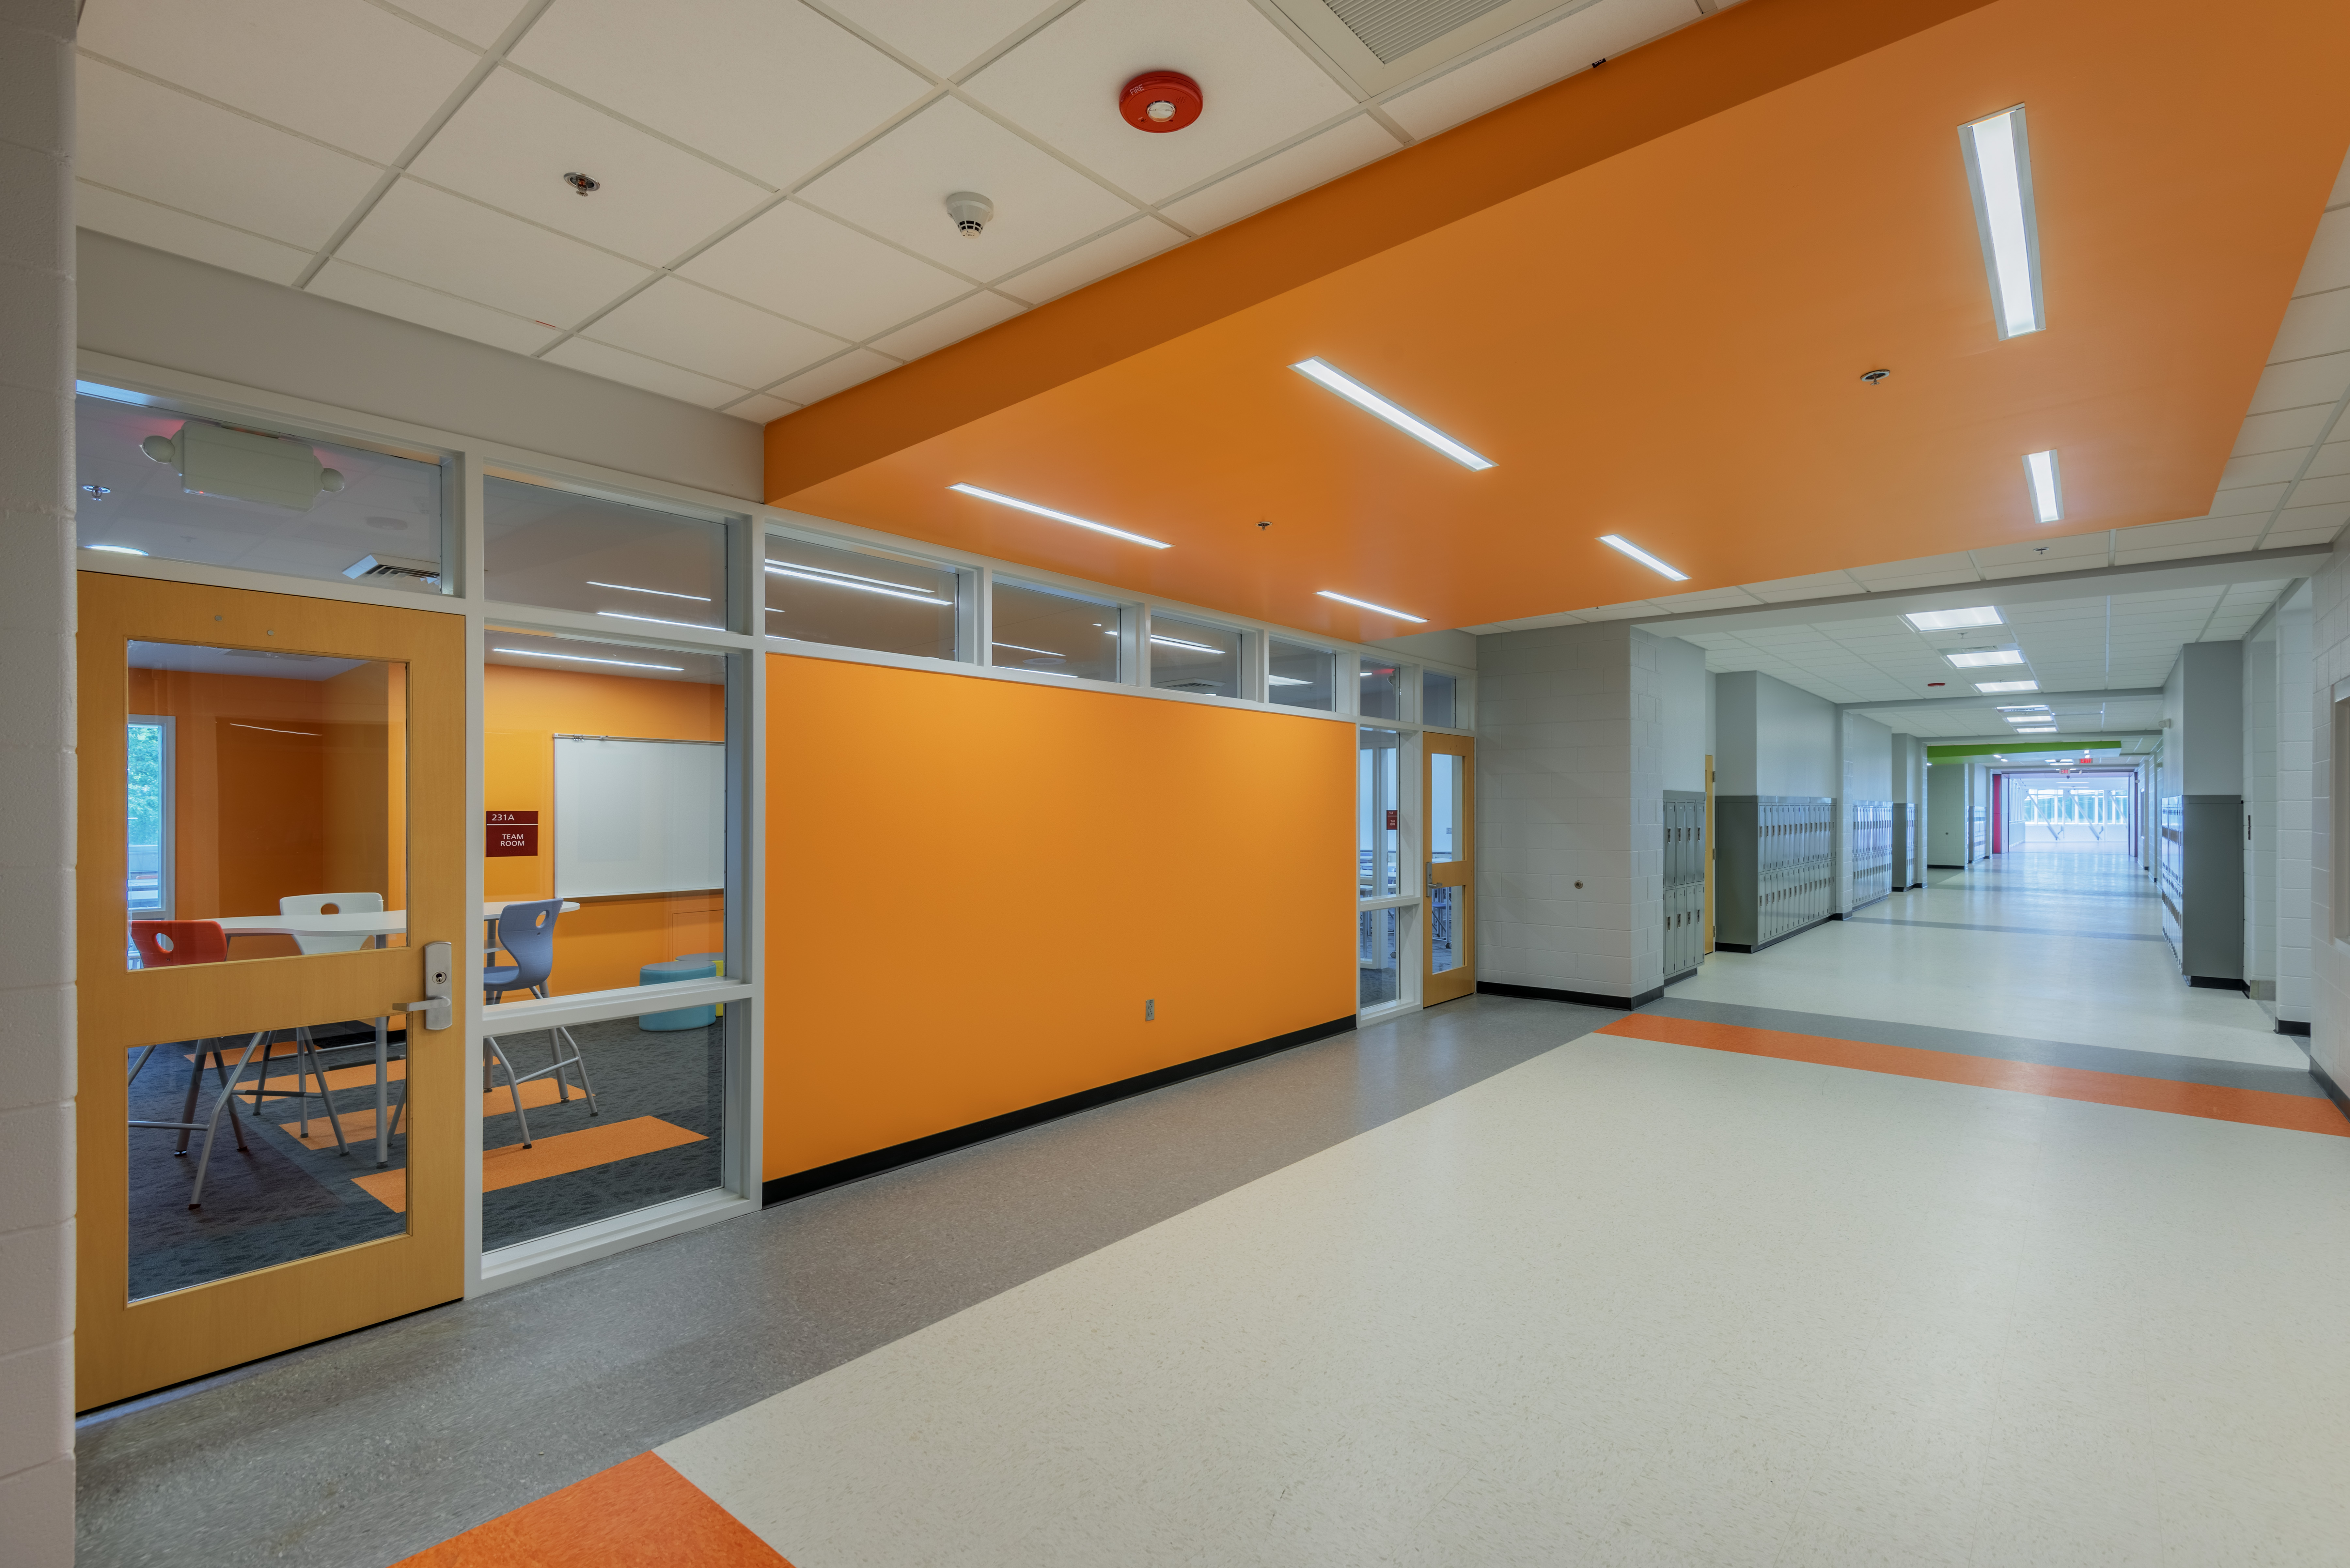 Asheville middle school barnhill contracting company - Interior design school nashville ...